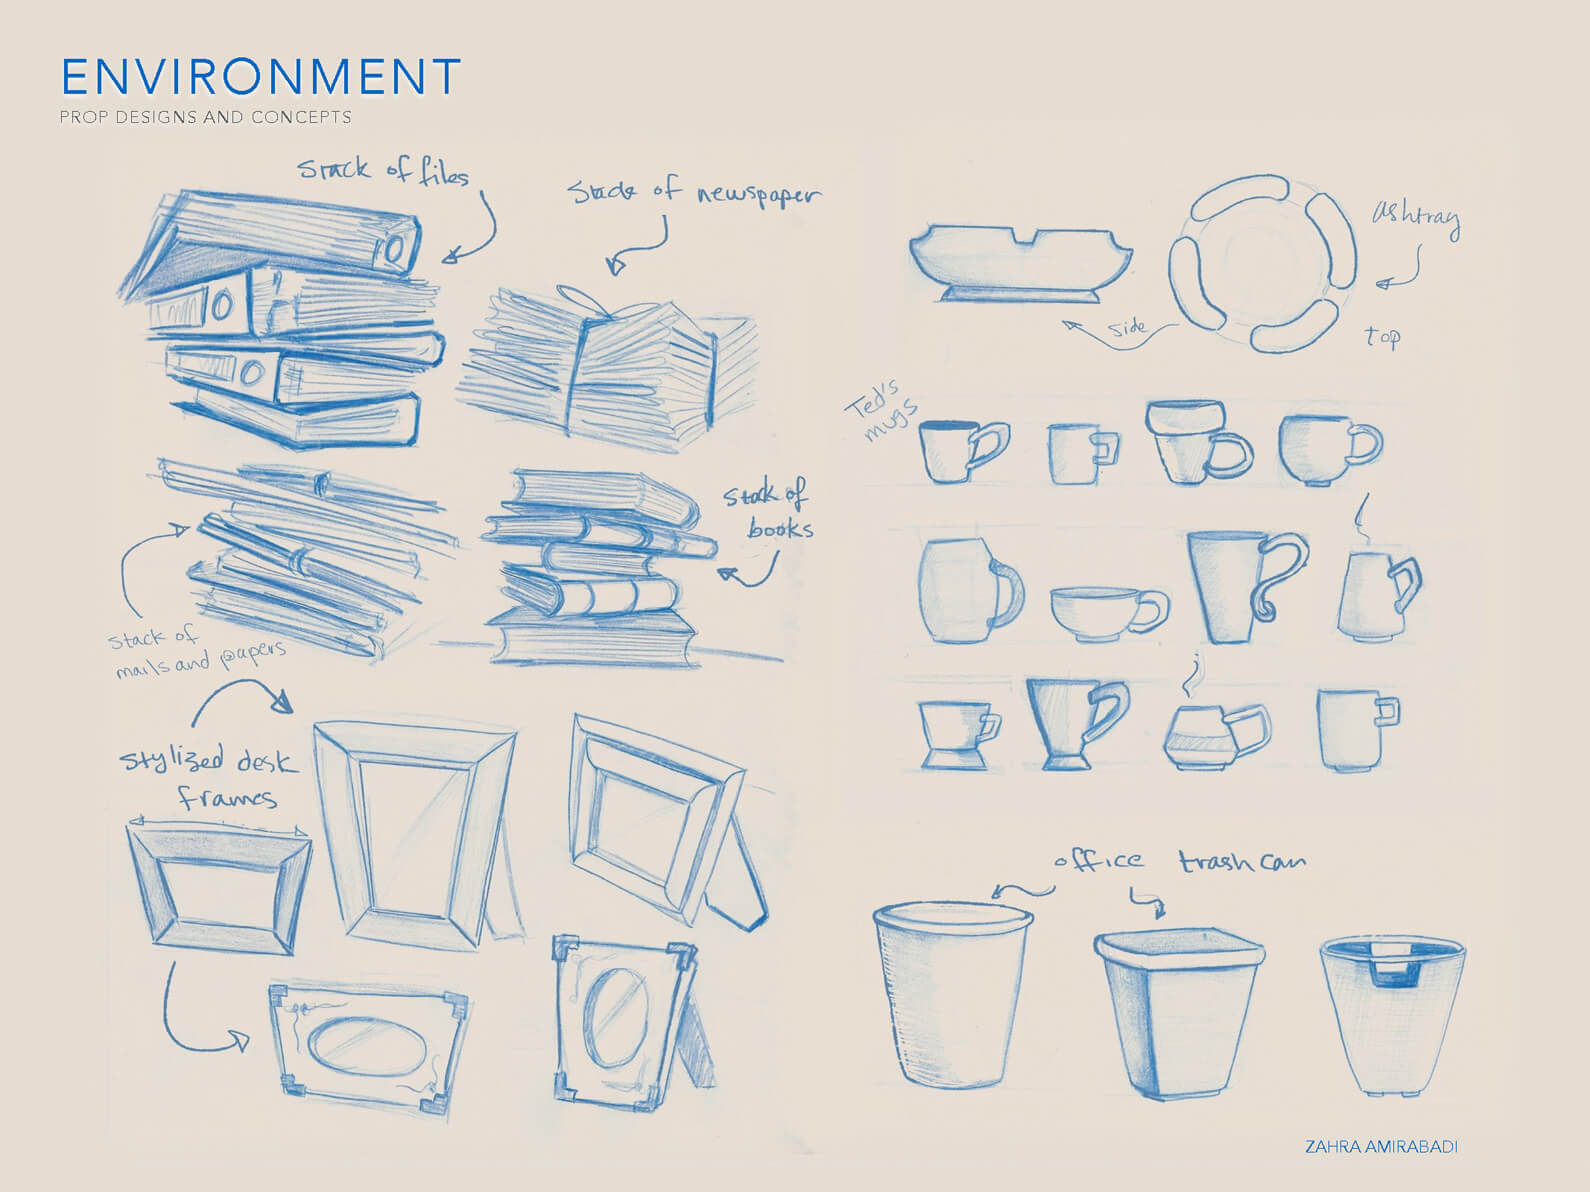 Blue line sketches of concepts for paper stack, picture frame, trash can, and cup props for Orientation Center for the Unseen